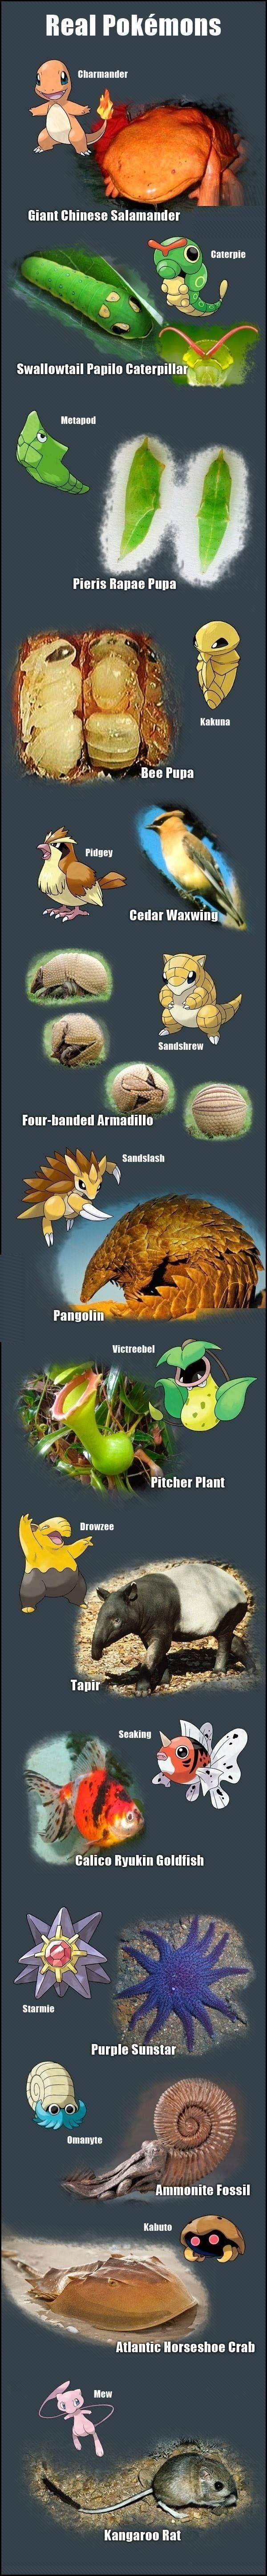 Pokemon in real life // funny pictures - funny photos - funny images - funny pics - funny quotes - #lol #humor #funnypictures